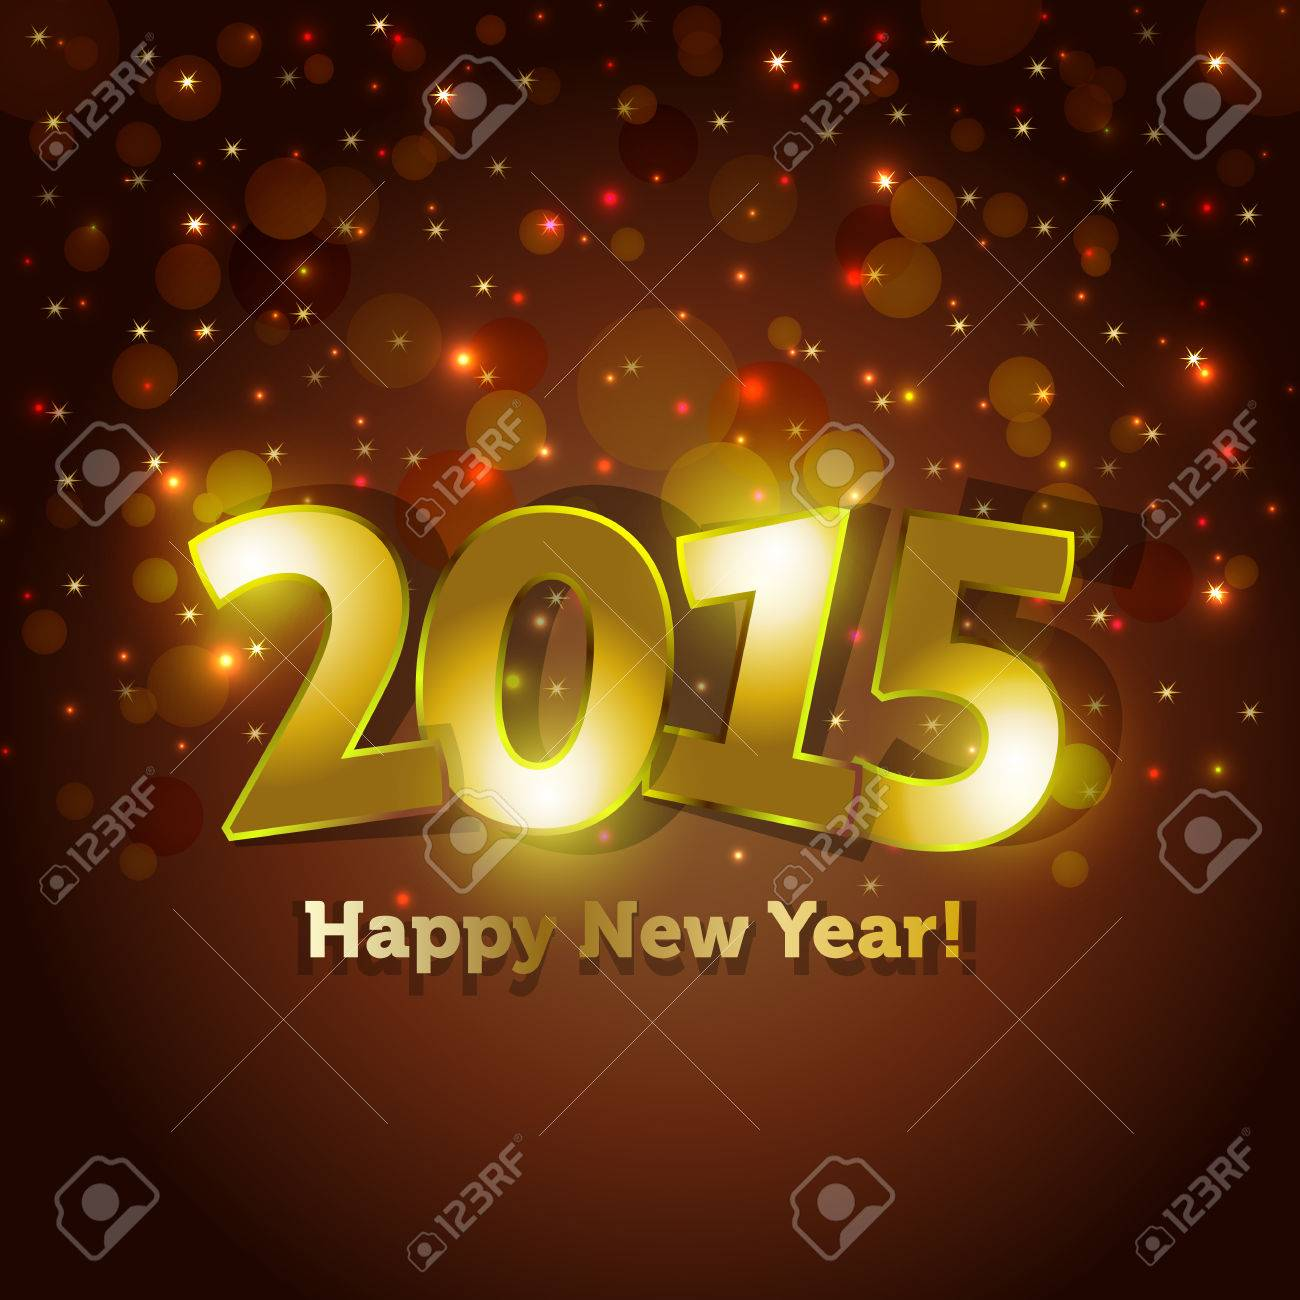 Golden 2015 Happy New Year Greeting Card With Sparking Spot Lights